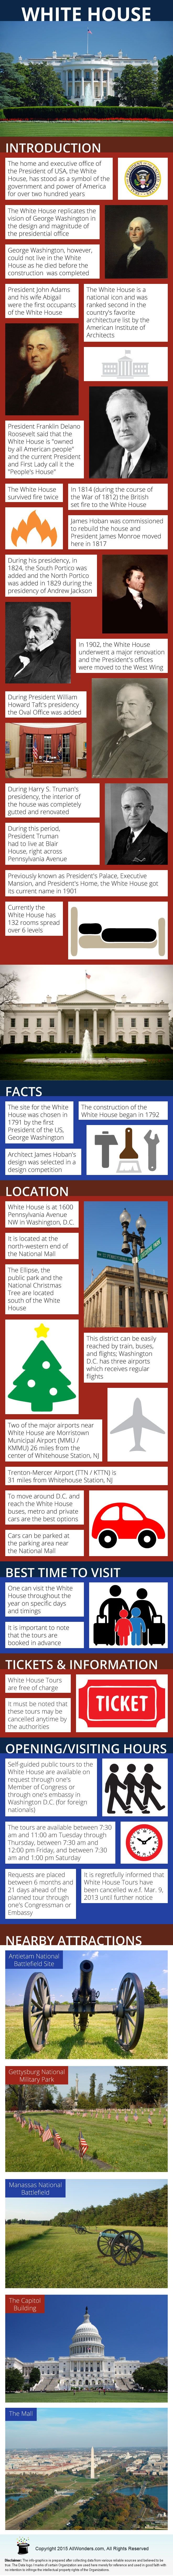 White House Infographic showing Facts and Information about the office in Washington DC, USA. Know about Its Location, Facts, nearby attractions and more.